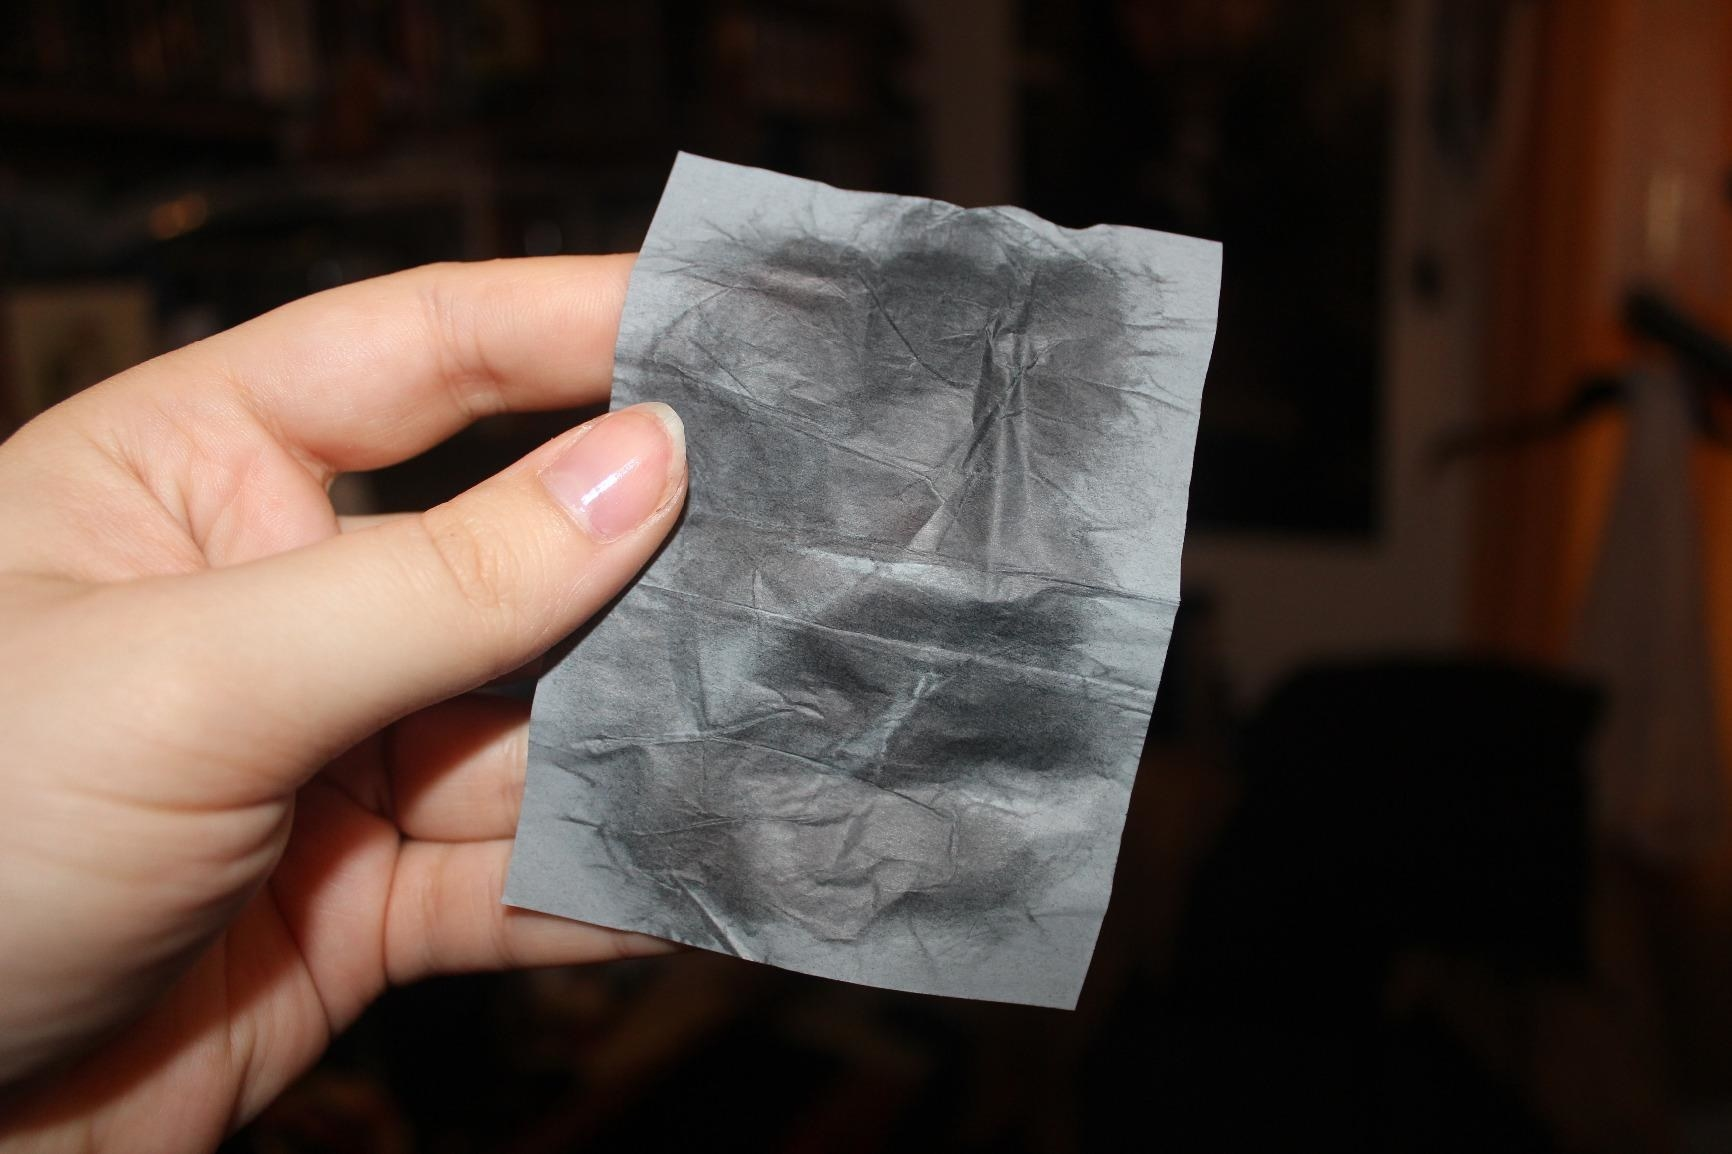 Reviewer photo of a used sheet